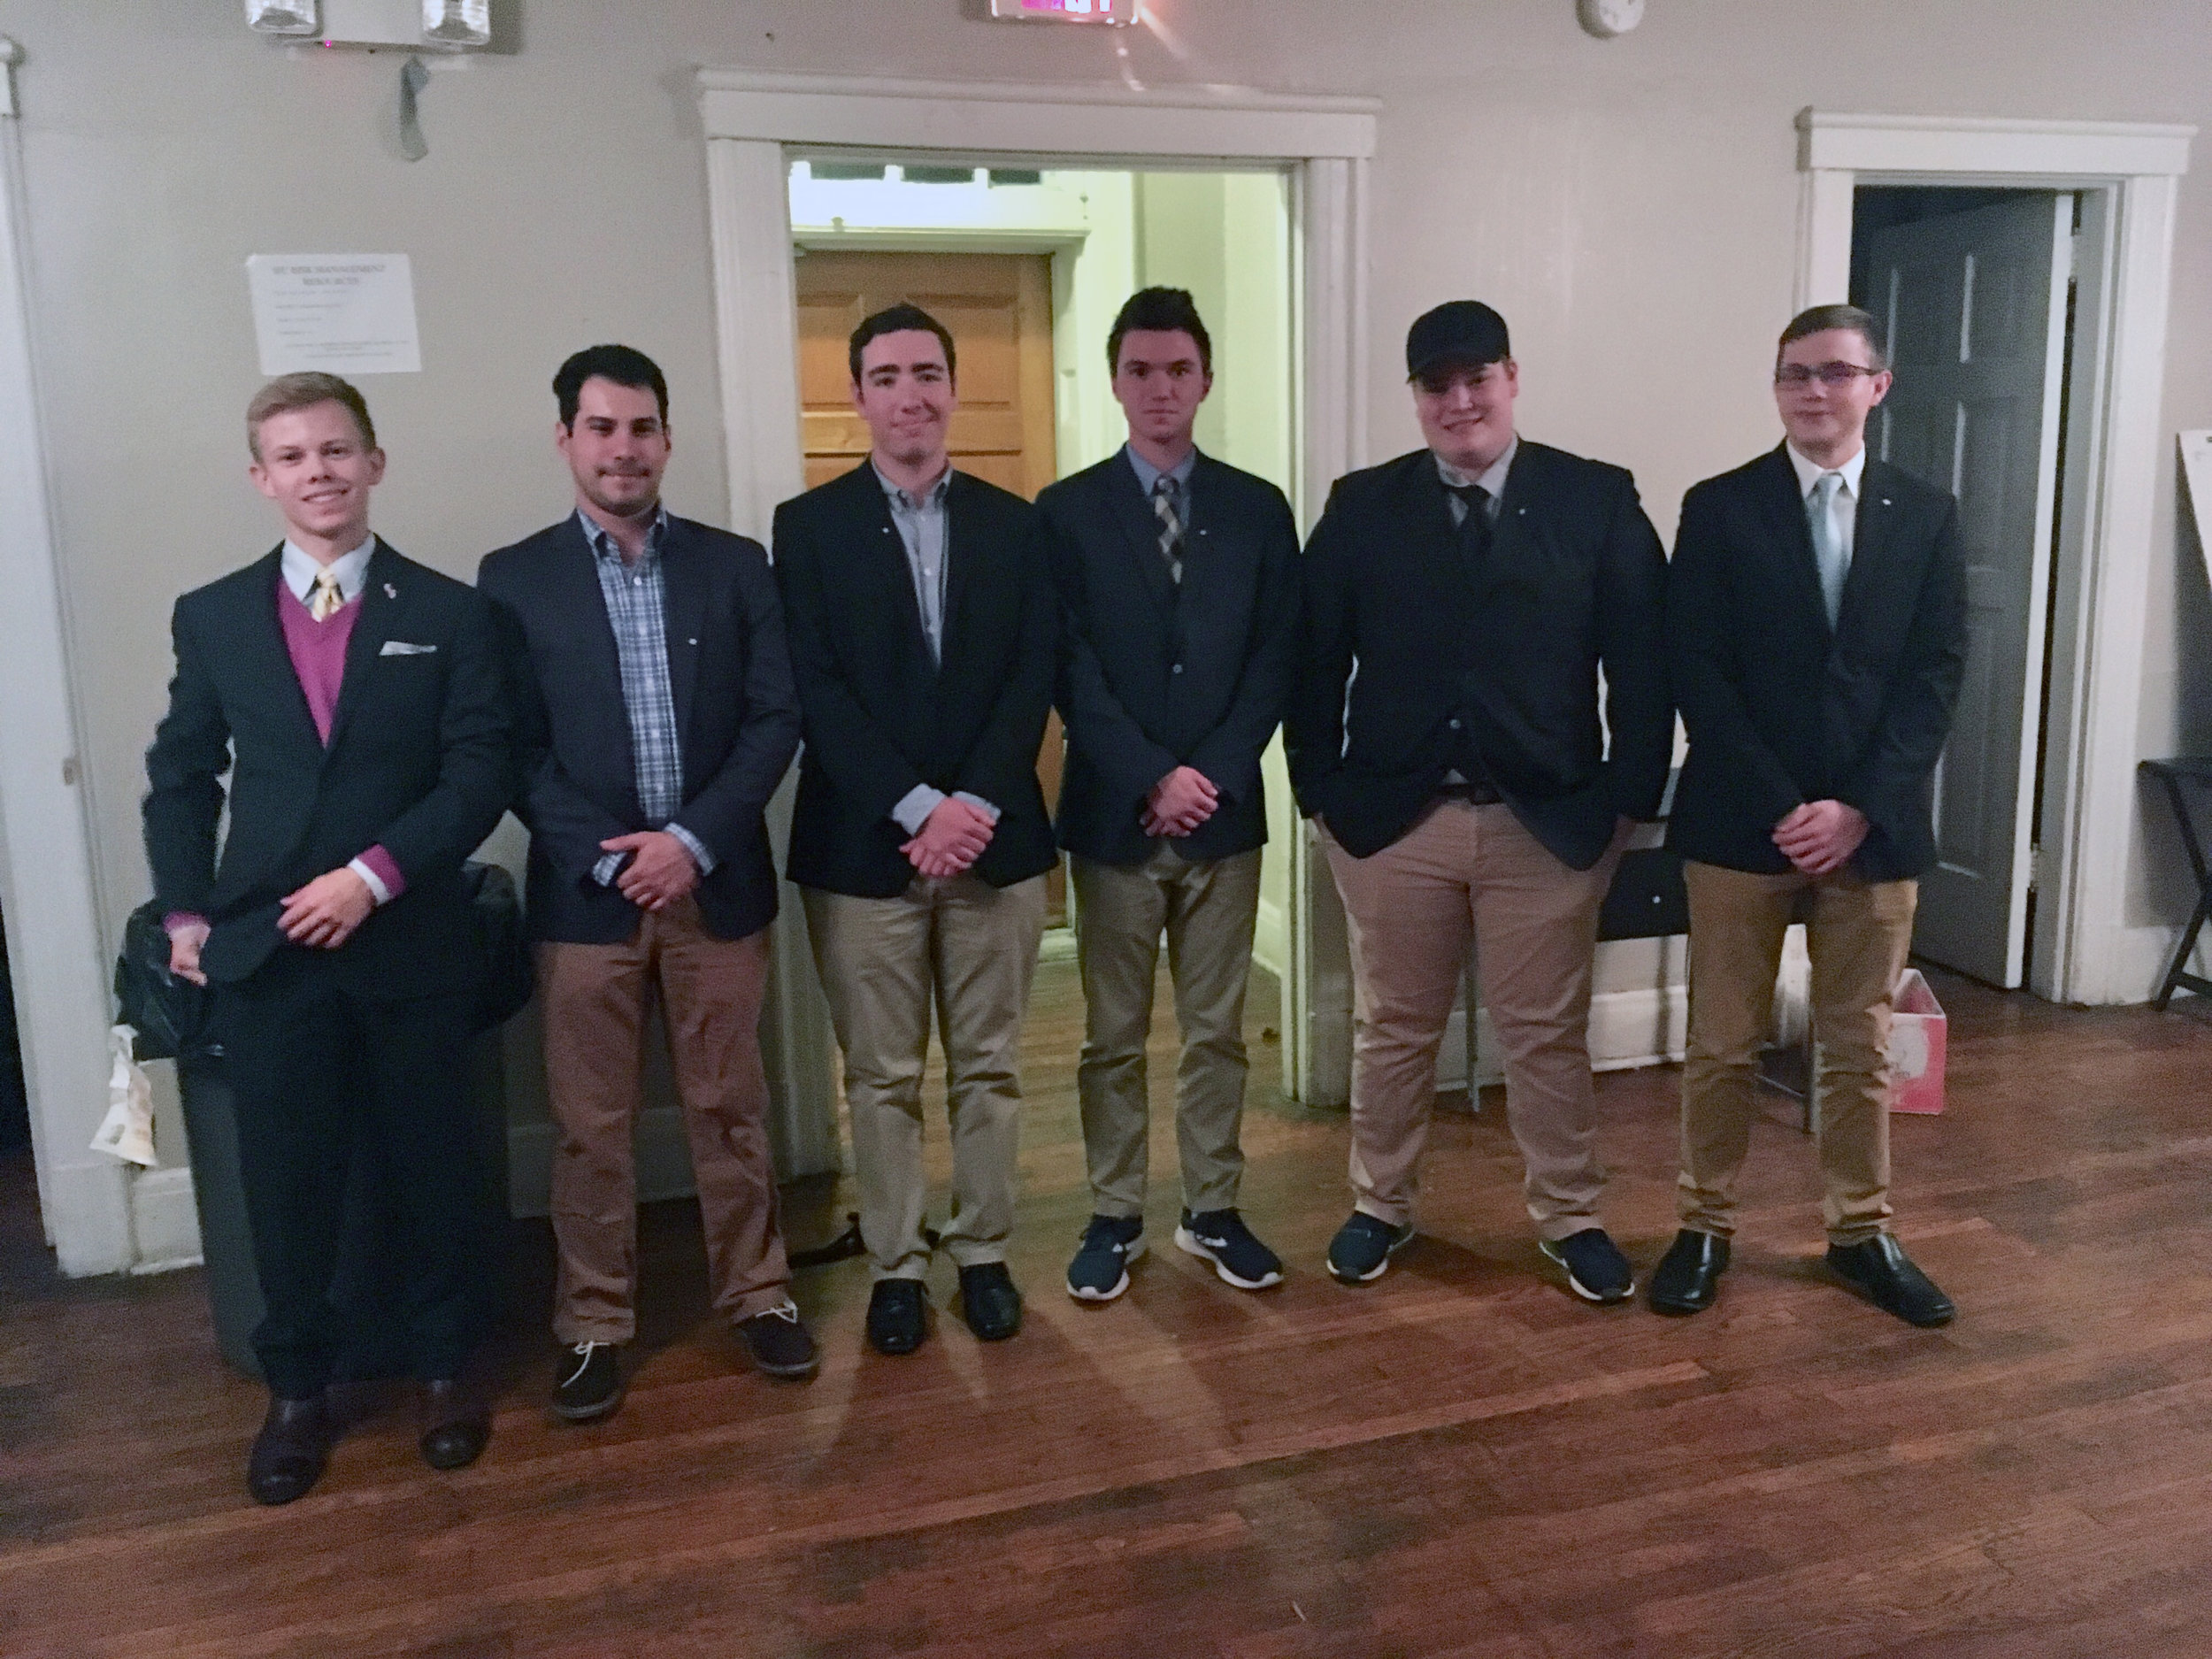 2018 Fall Pledge Class: (from left to right) Jake, Jeremy, Rob, Trey, Nick, and John.